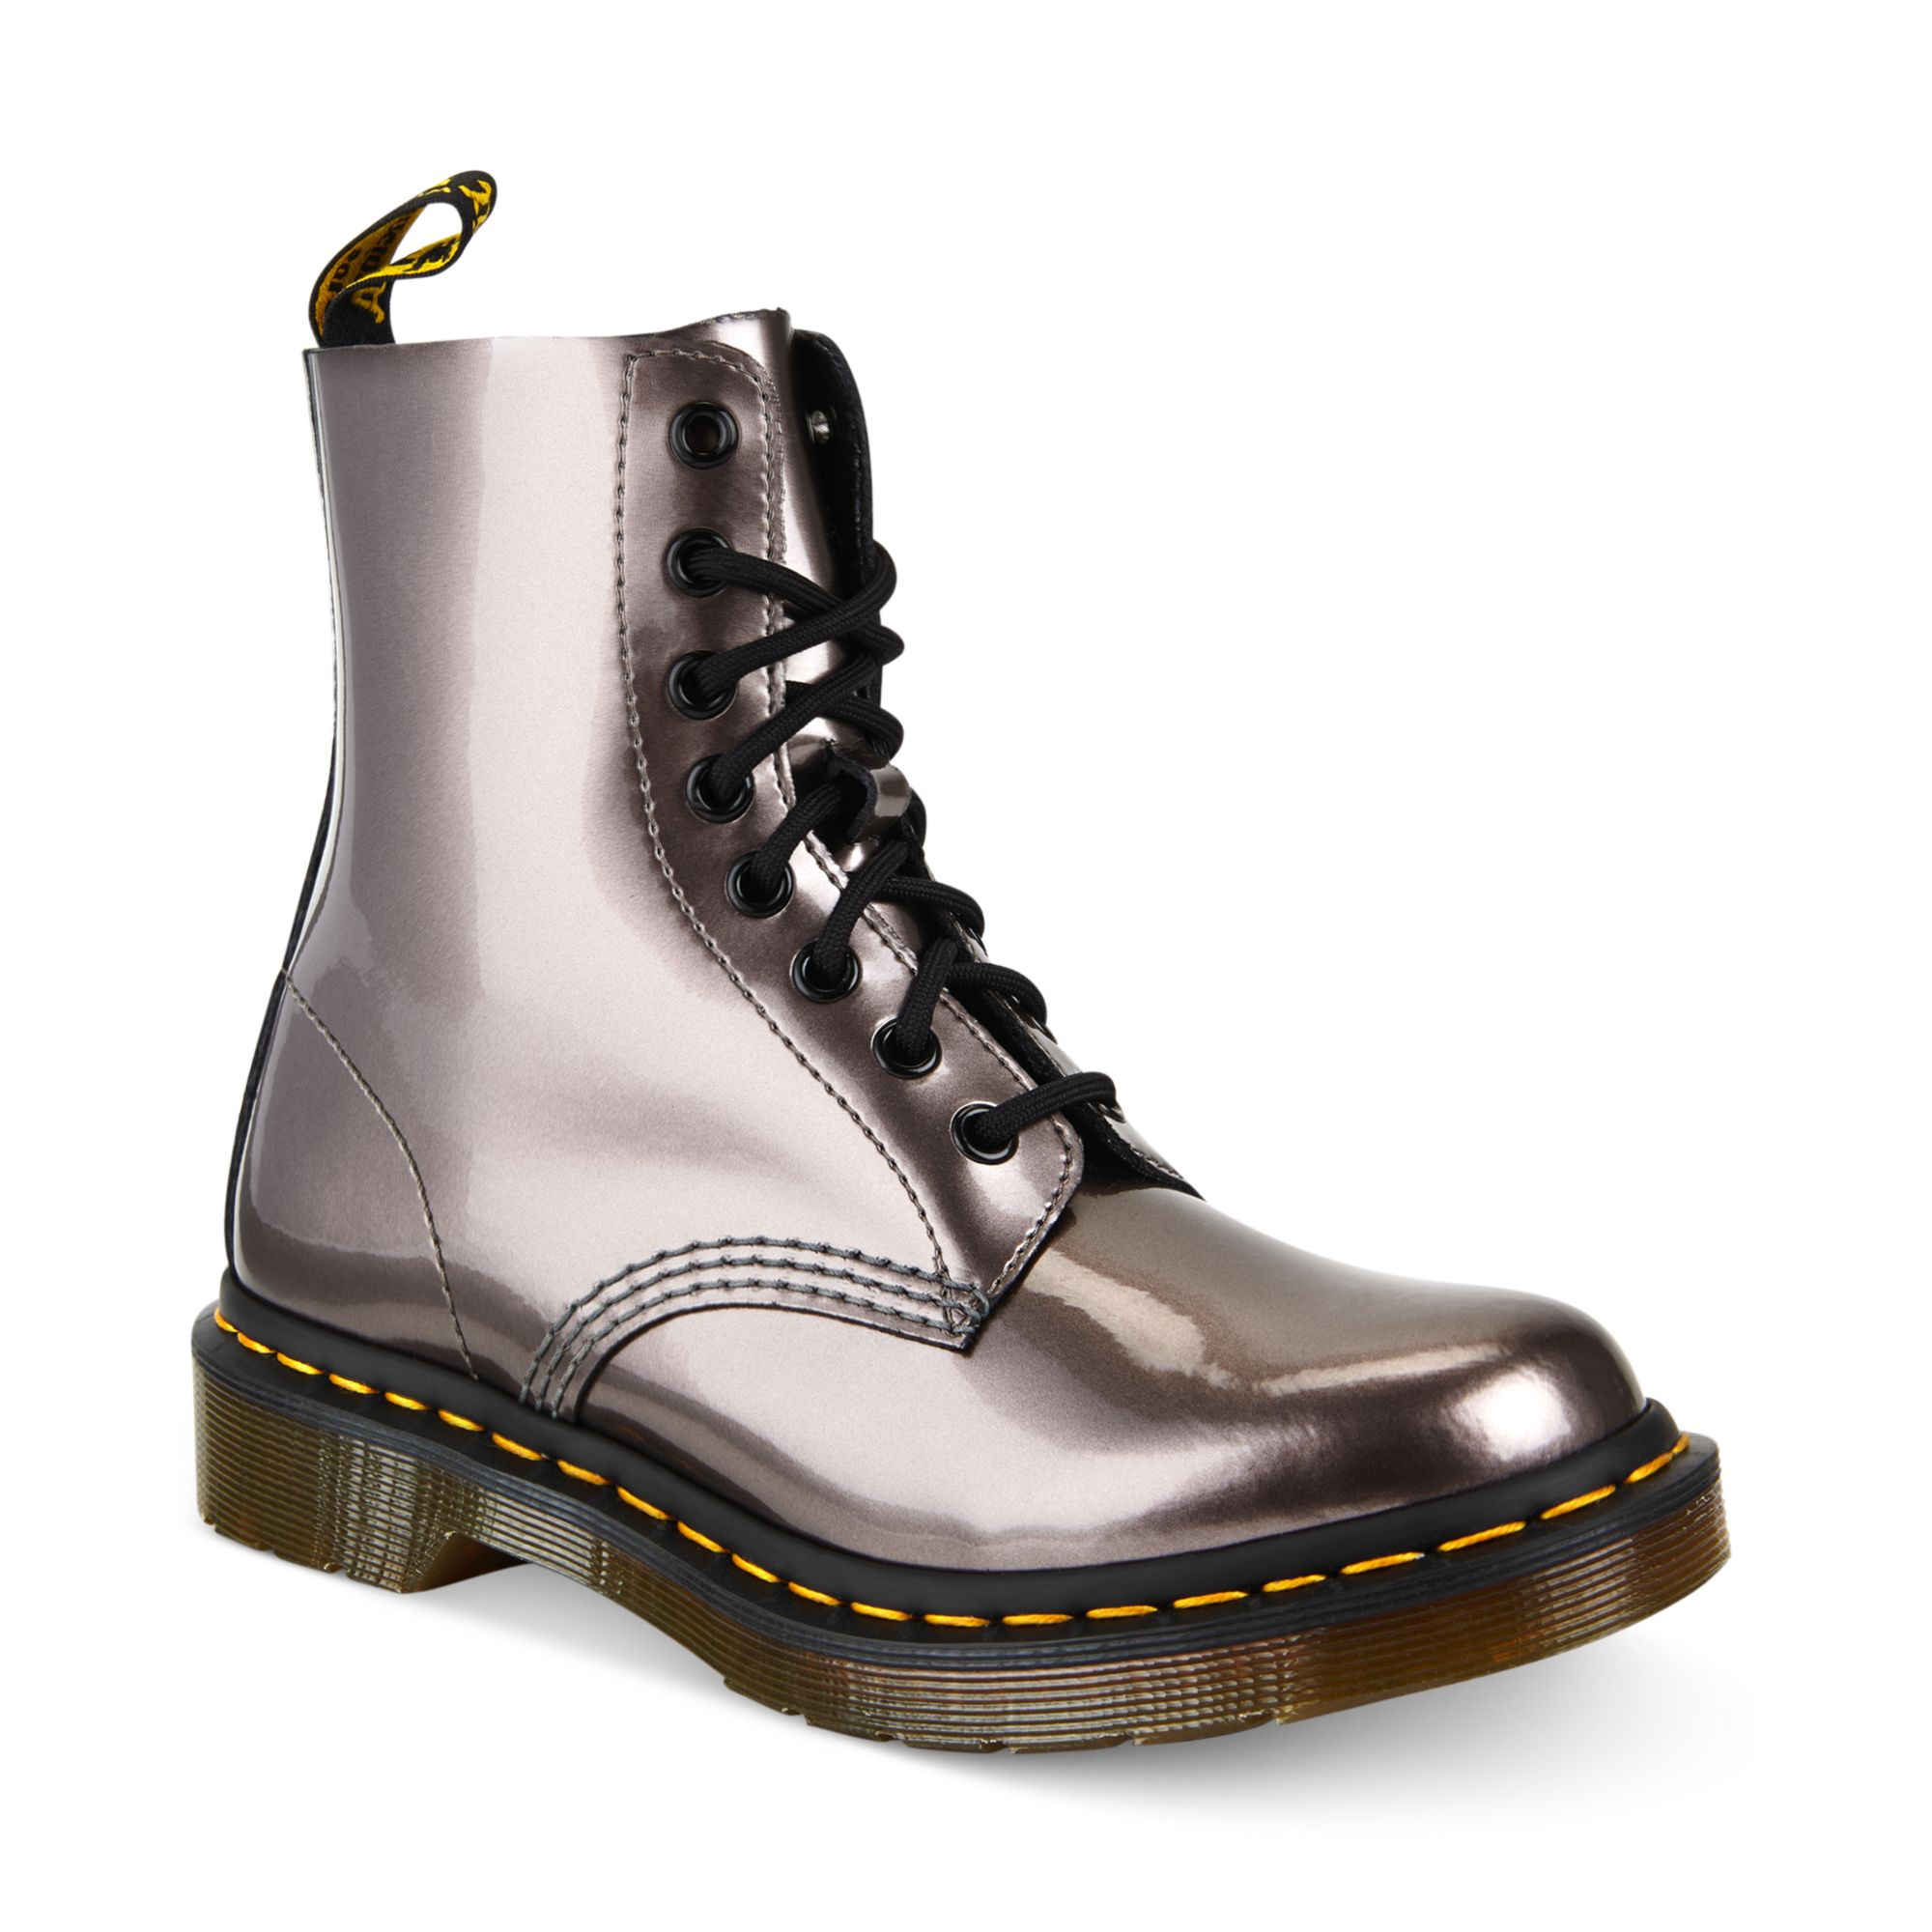 deb73c129cc28 Dr. Martens Ankle Boots in Metallic - Lyst